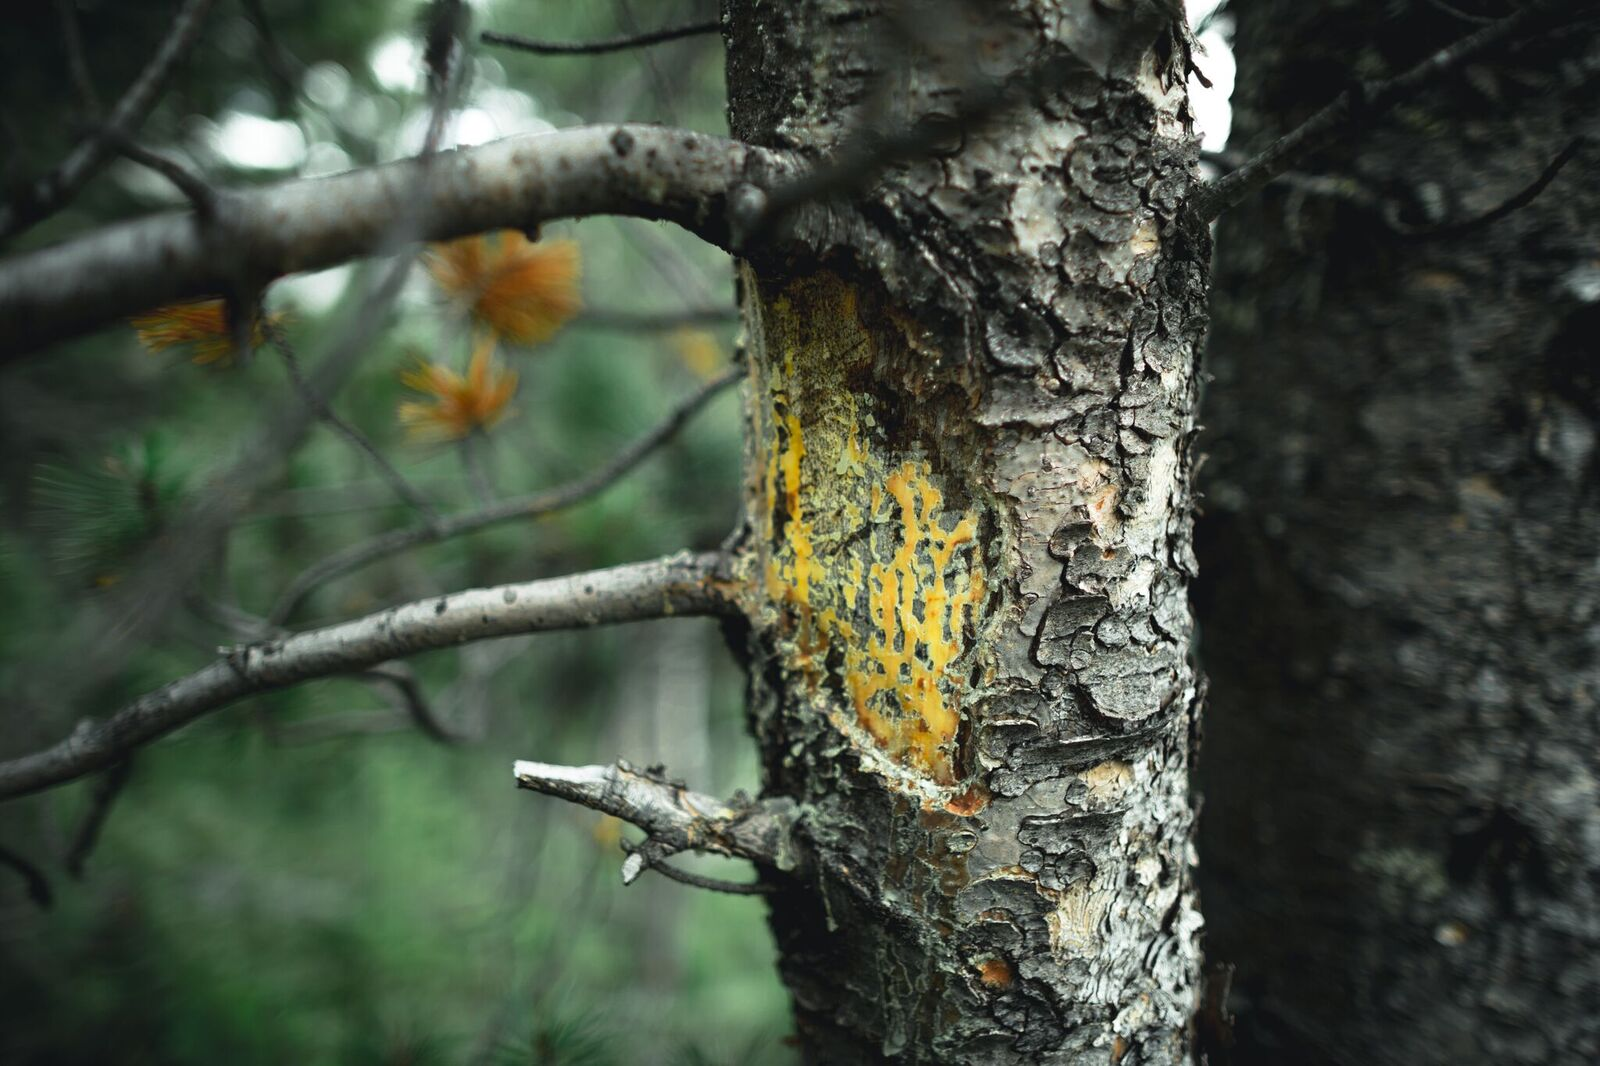 blister rust impacting a whitebark pine